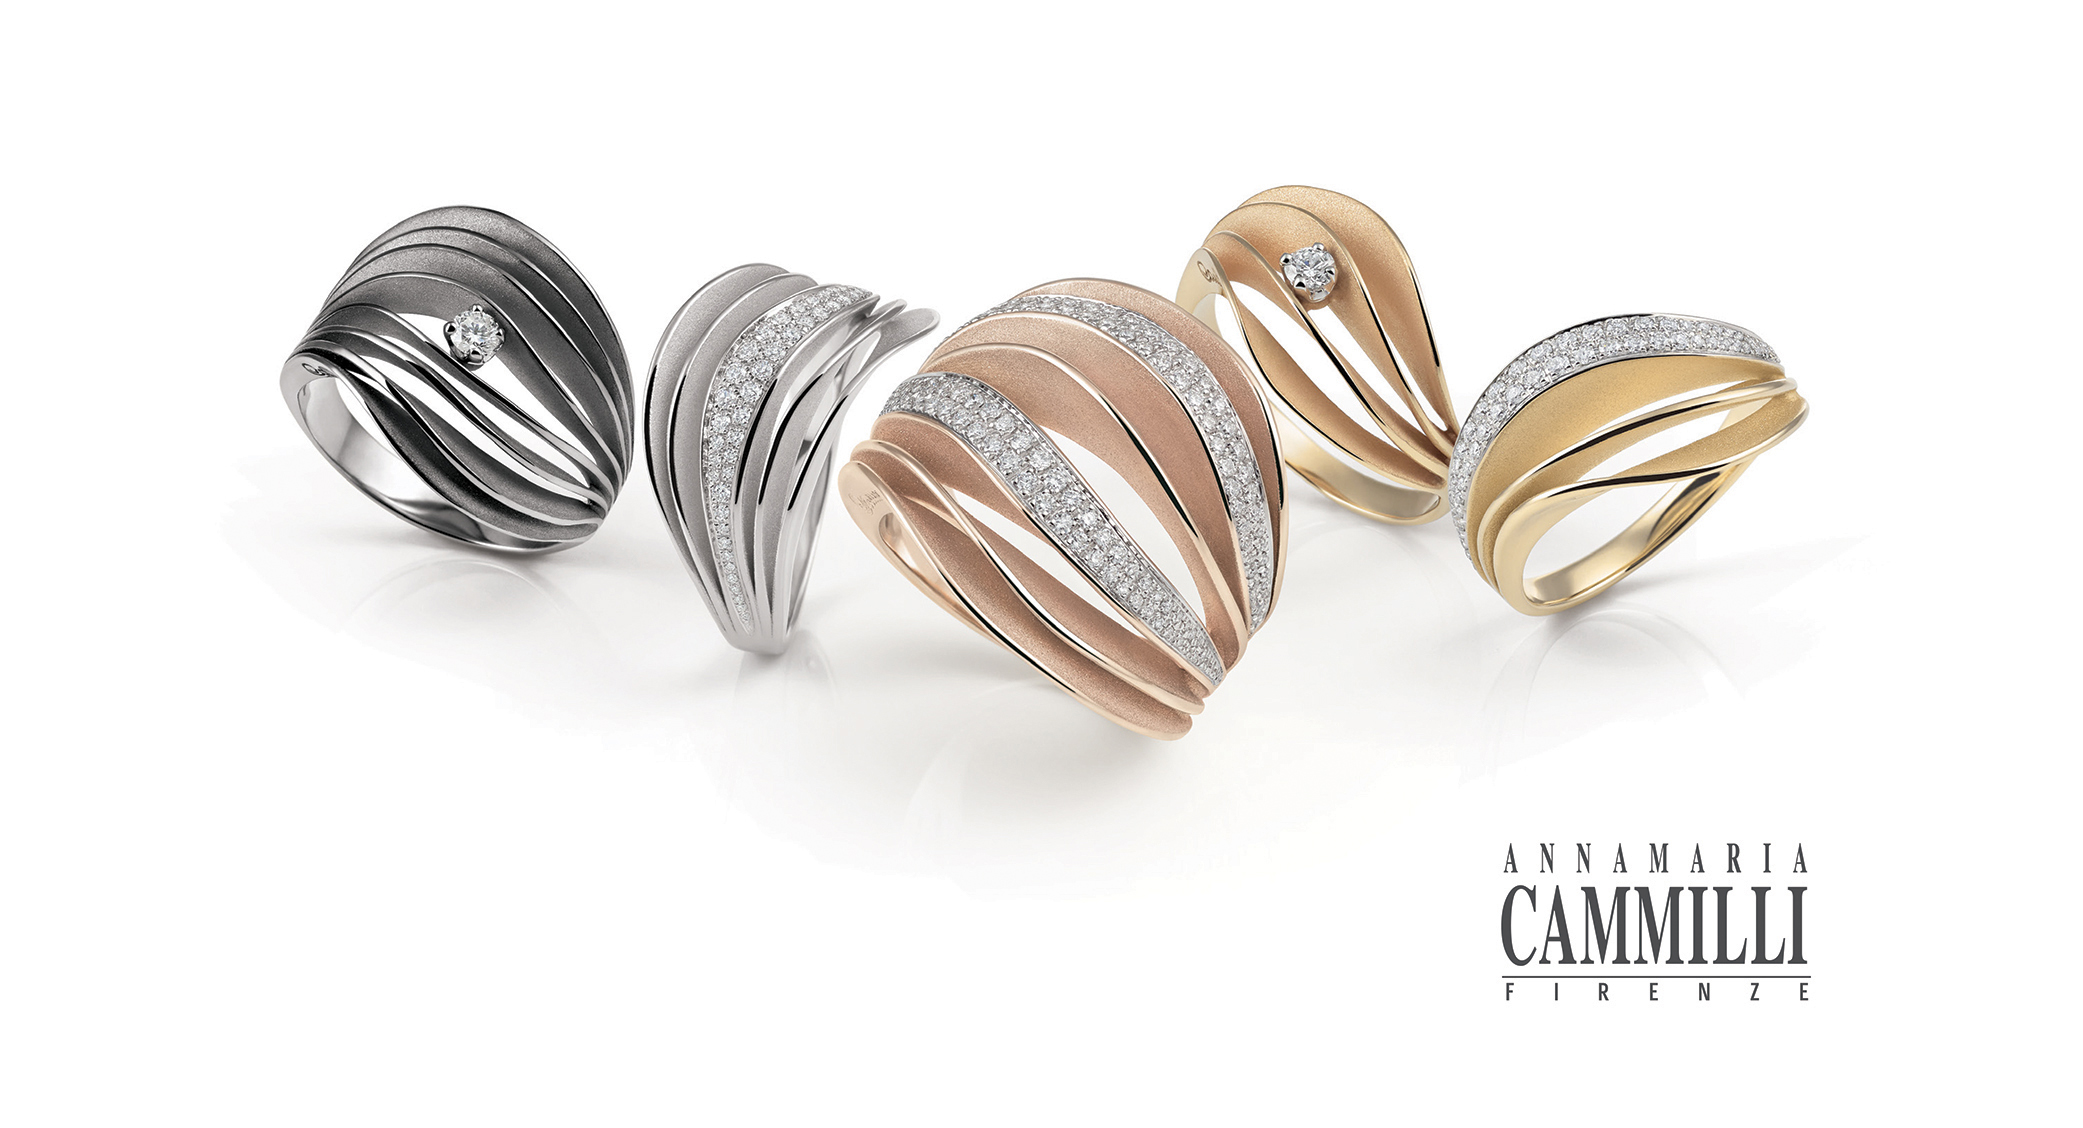 Five 18 carat golden rings with diamonds from the Velaa collection by Annamaria Cammilli.